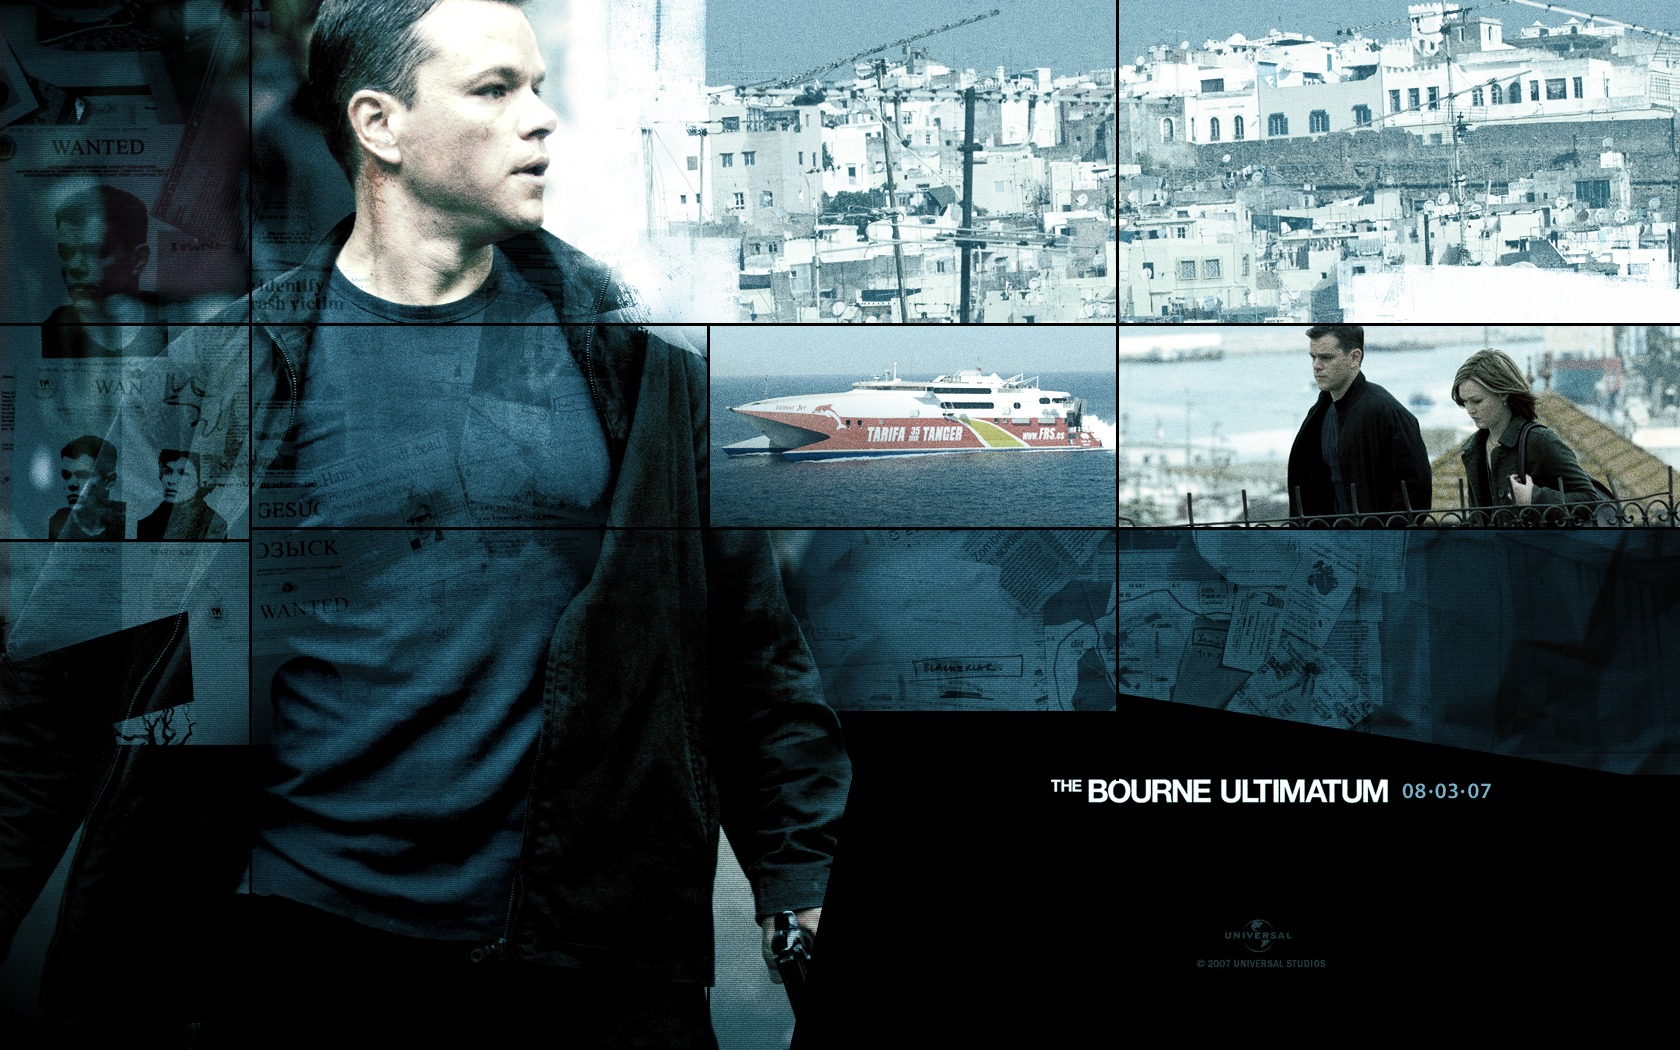 The bourne ultimatum background music download